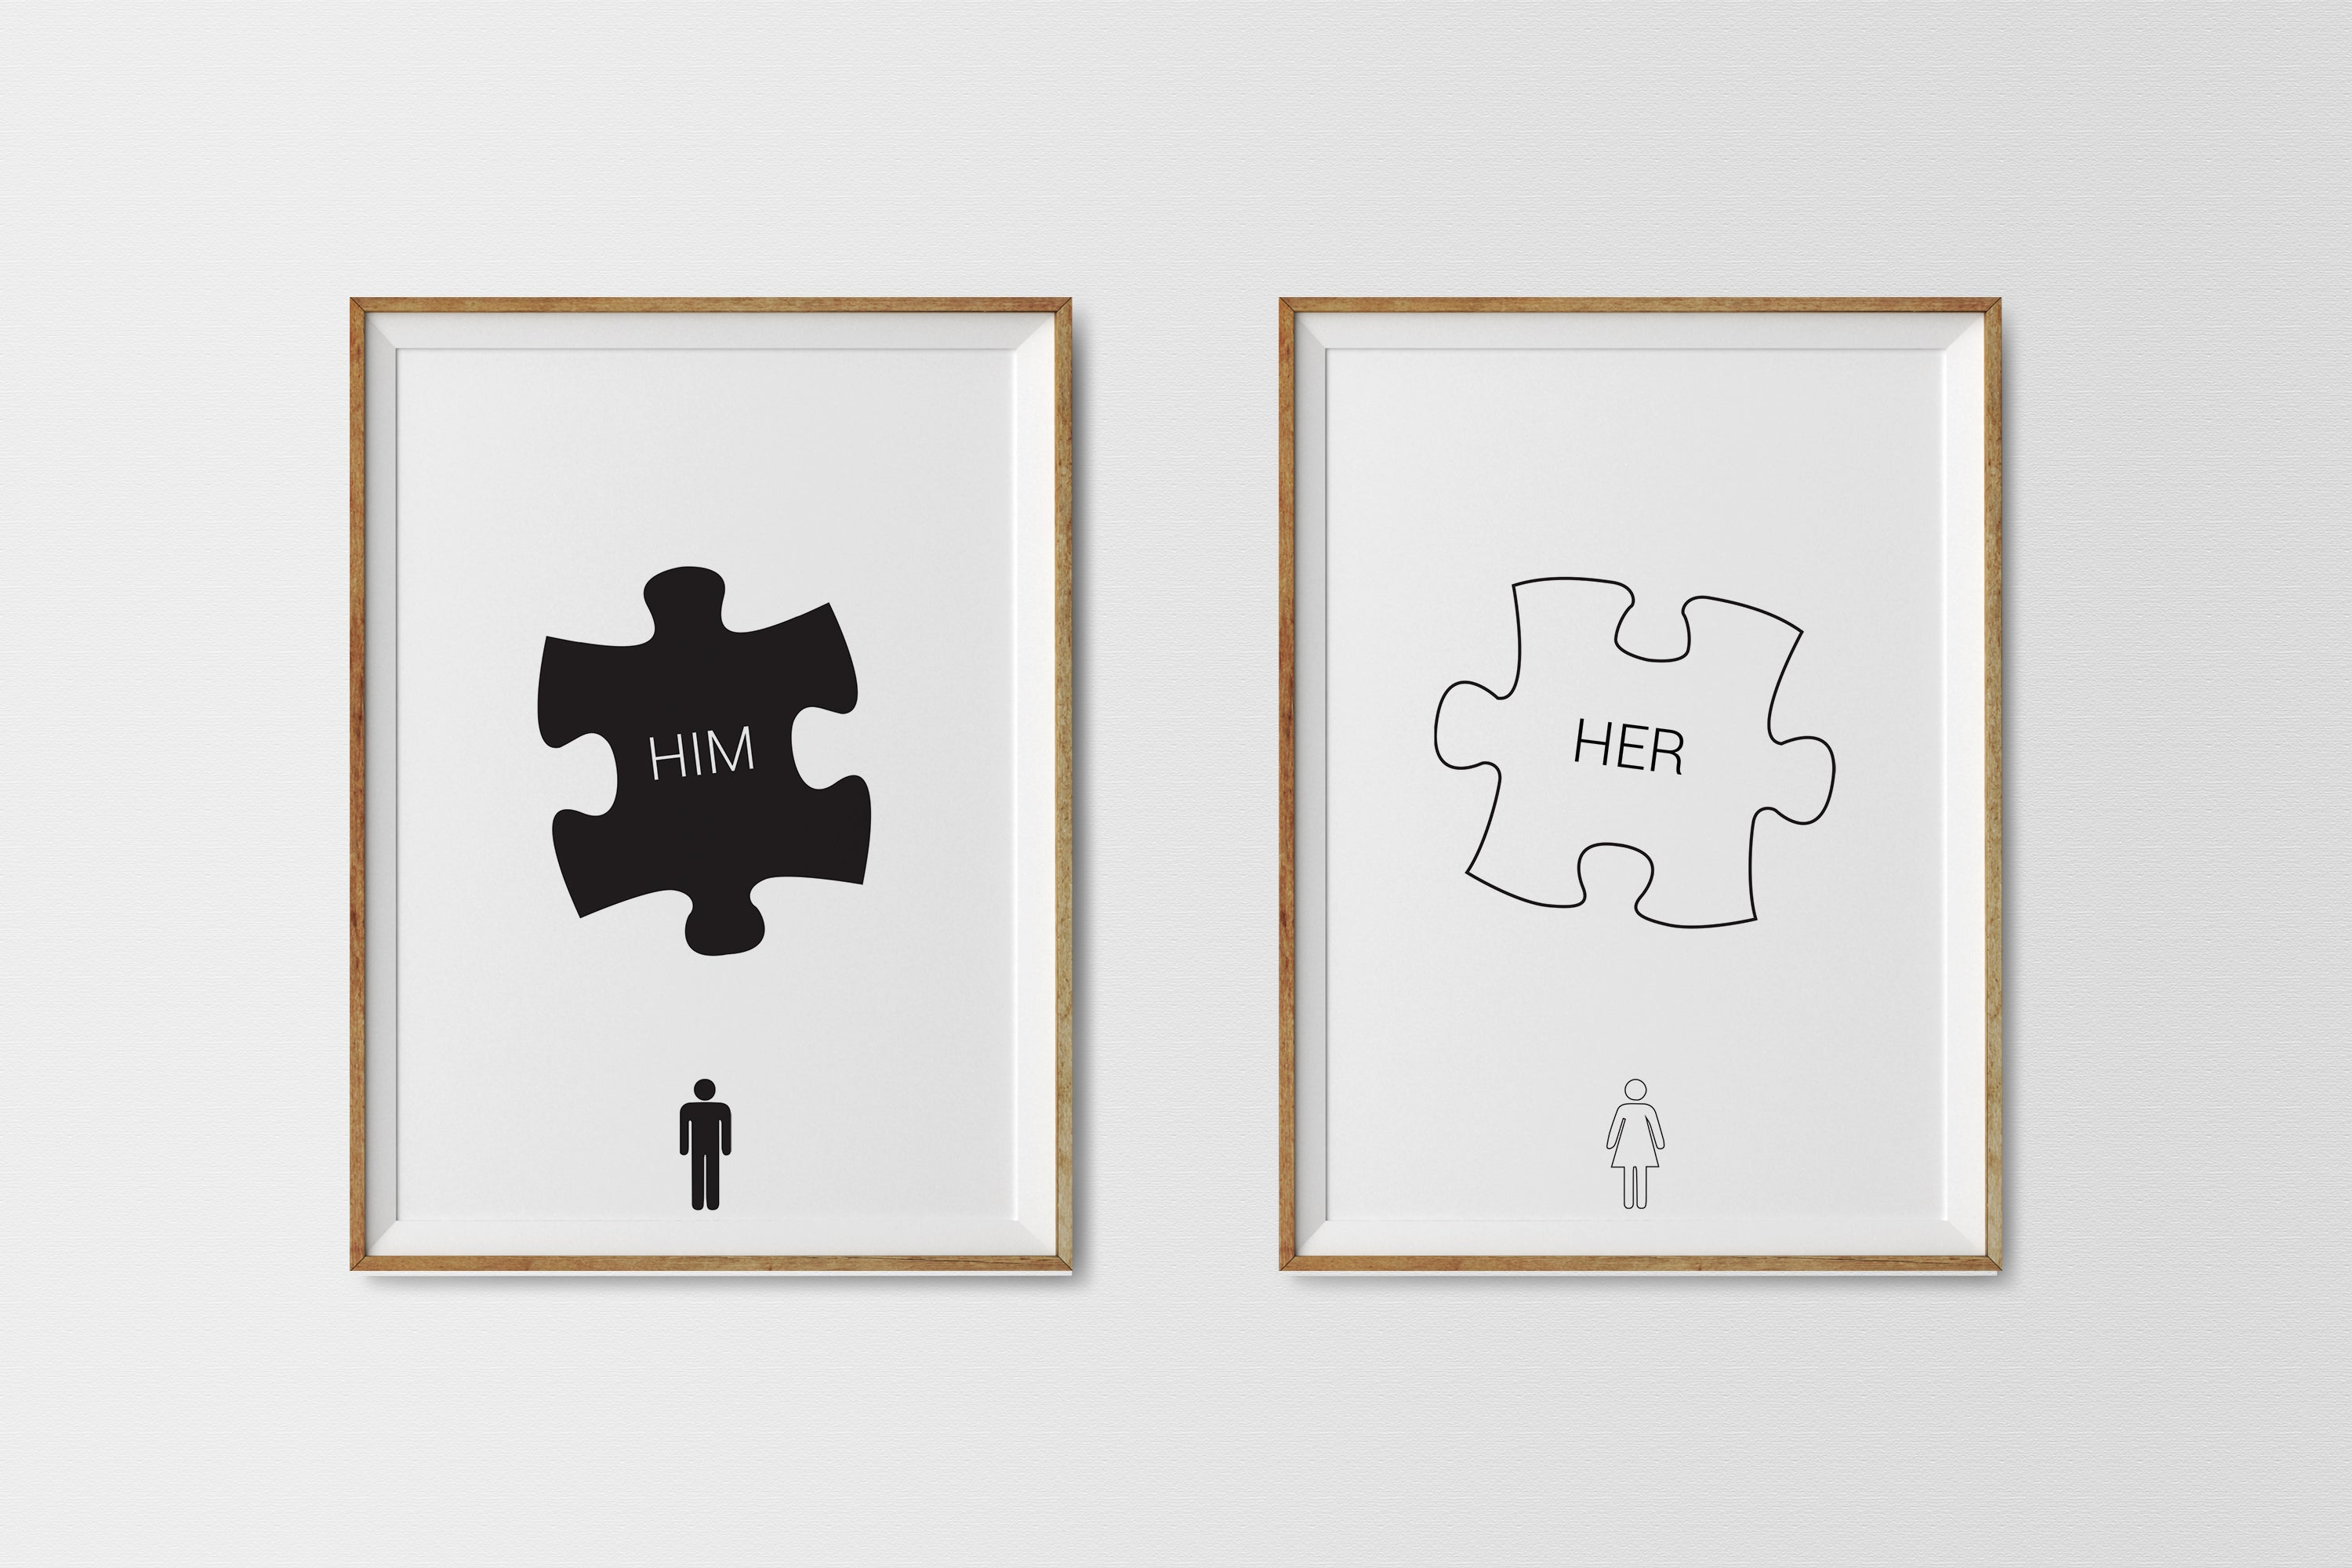 'Him' and 'Her' wall art prints in frames hanging on a wall